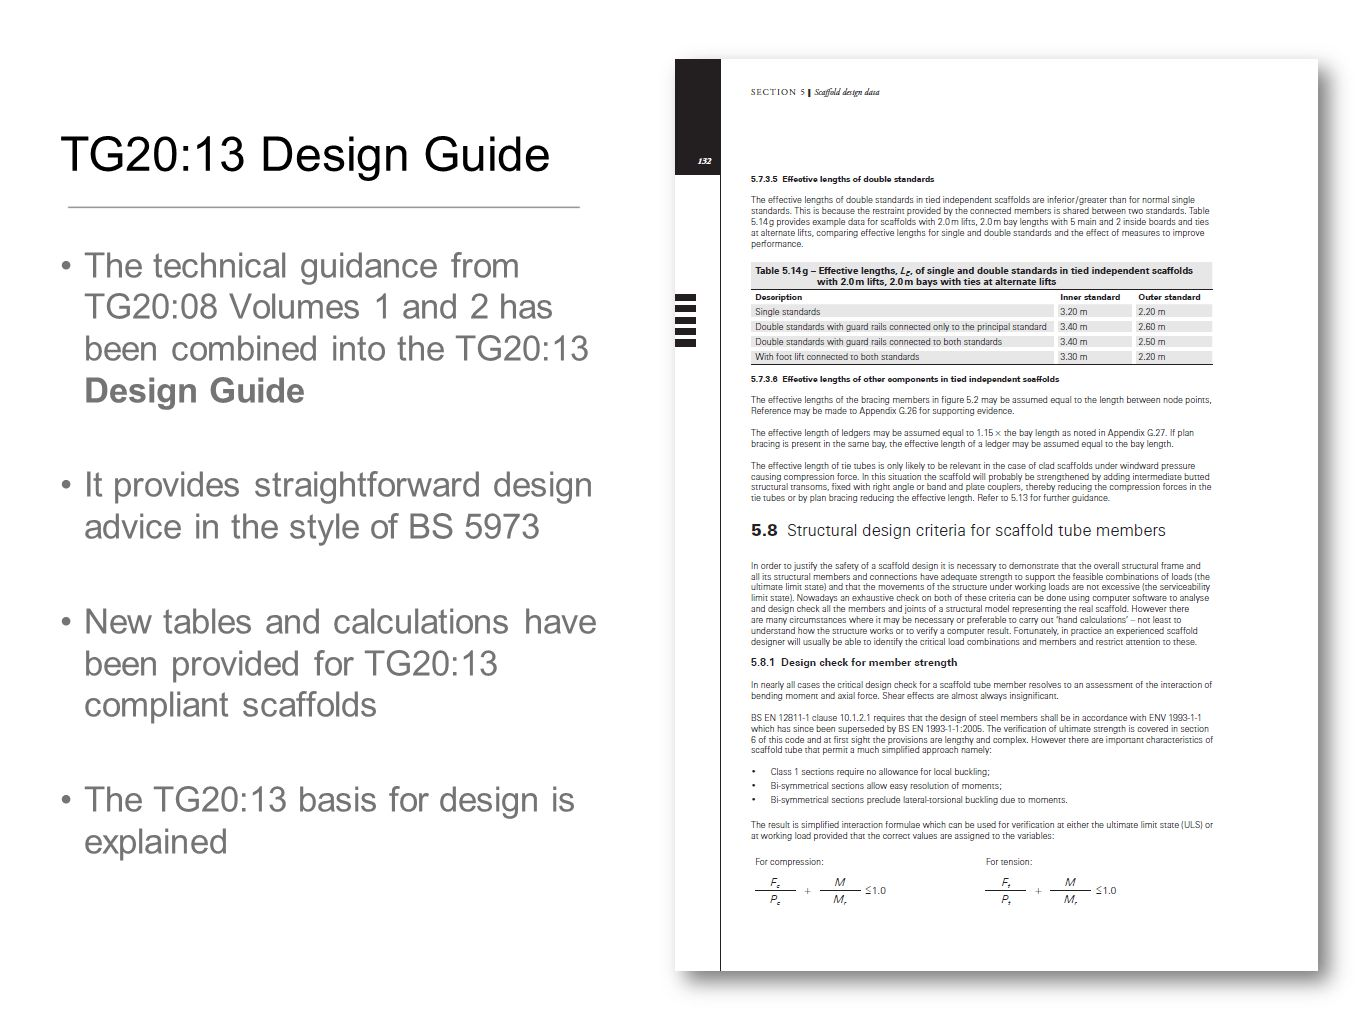 TG20:13 Design Guide The technical guidance from TG20:08 Volumes 1 and 2 has been combined into the TG20:13 Design Guide.